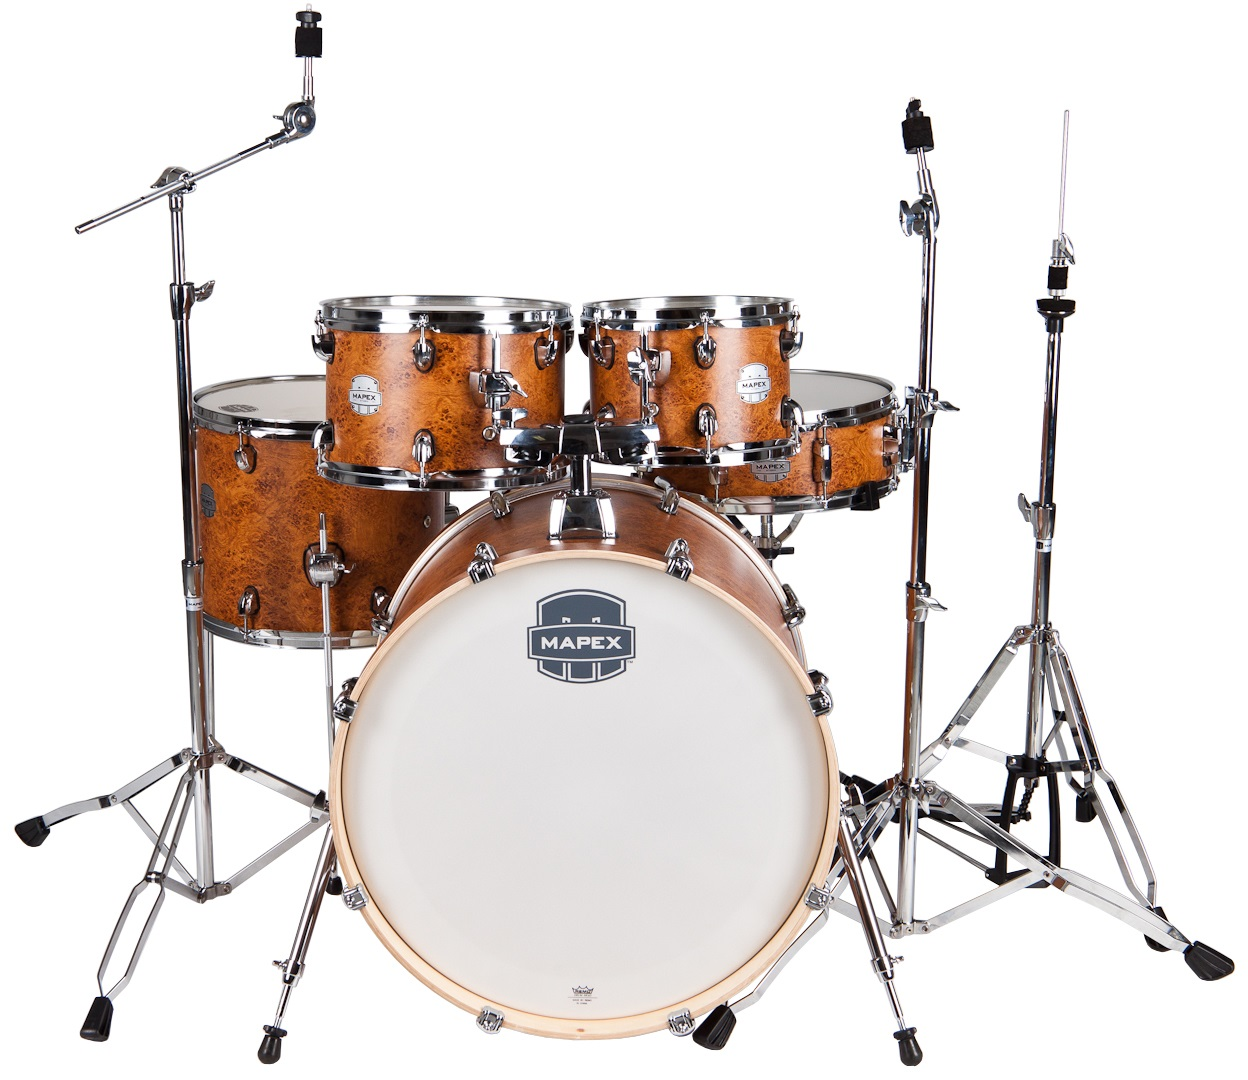 Mapex Storm studio set Camphor Wood Grain